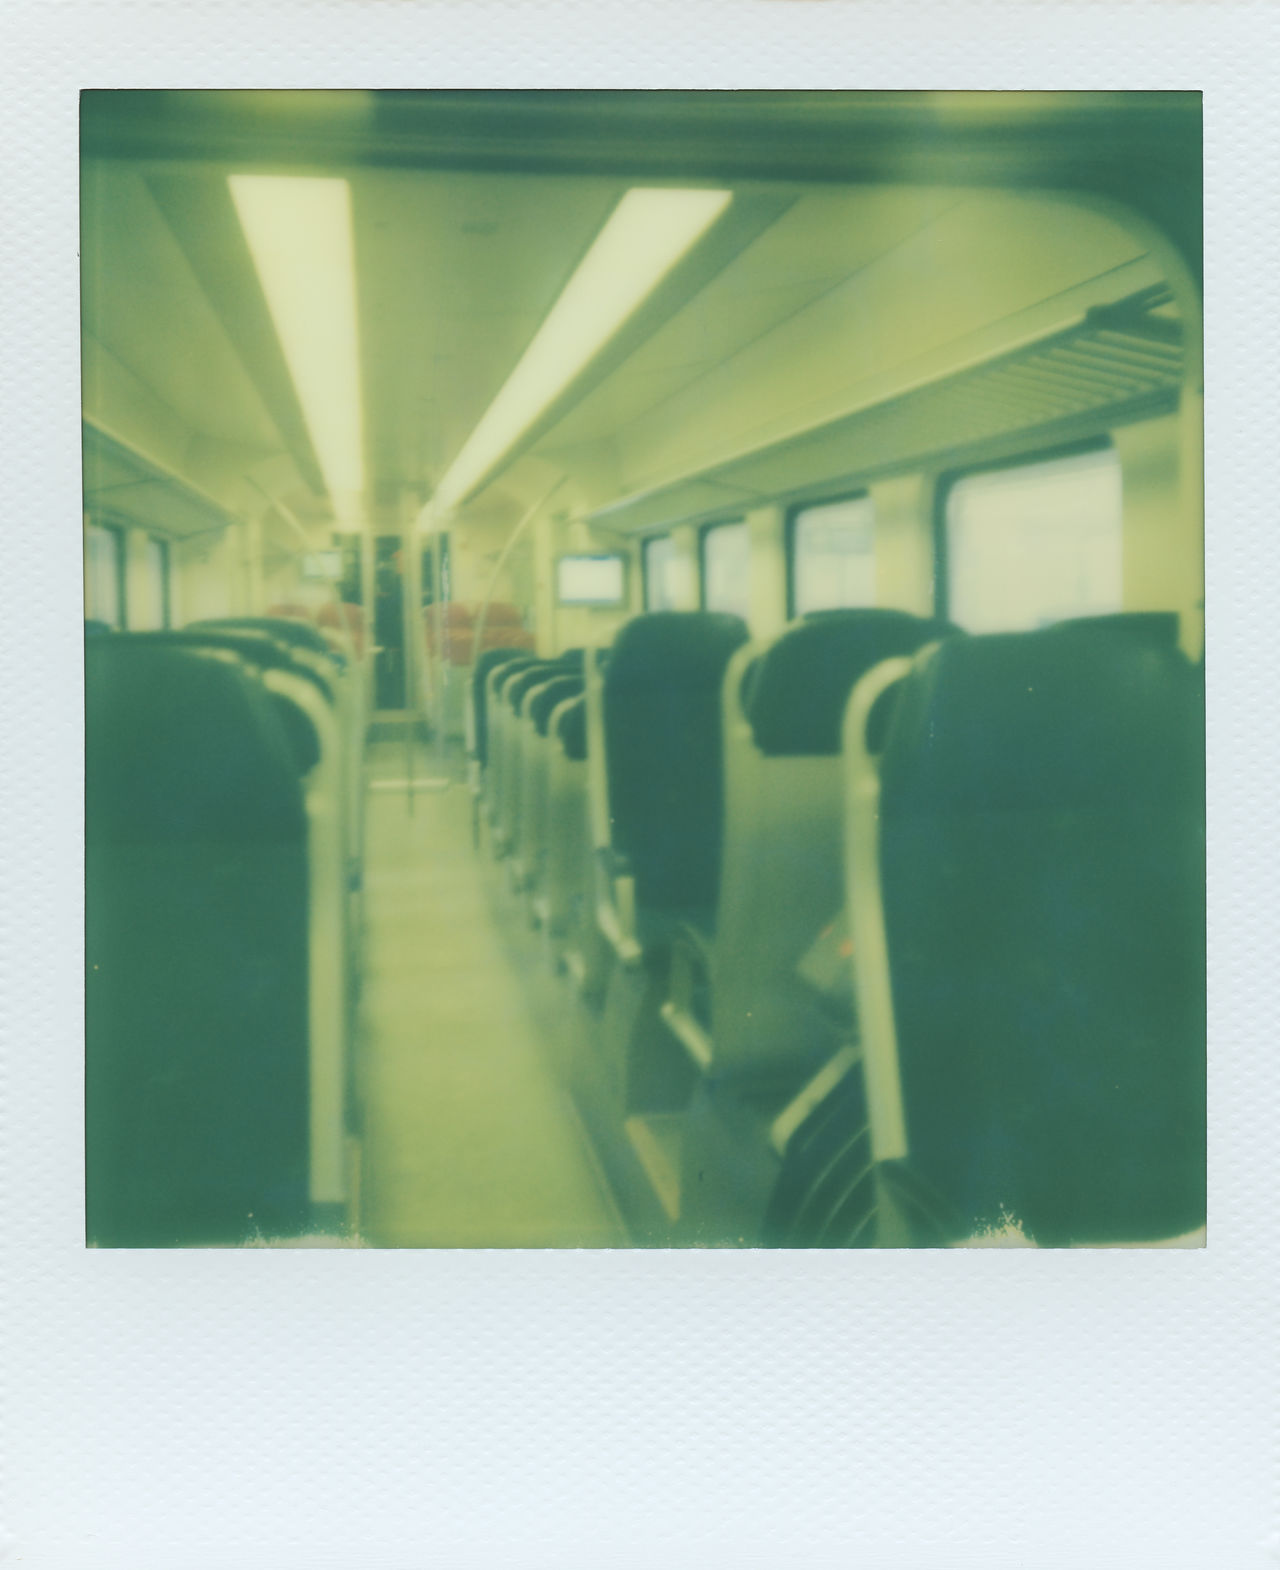 Empty Train Aisle Chair Empty Impossible I-1 Impossible Project Instant Lights No People Ns Path Polaroid Public Public Transport Public Transportation Seats Sprinter Train Train Compartment Urban Windows